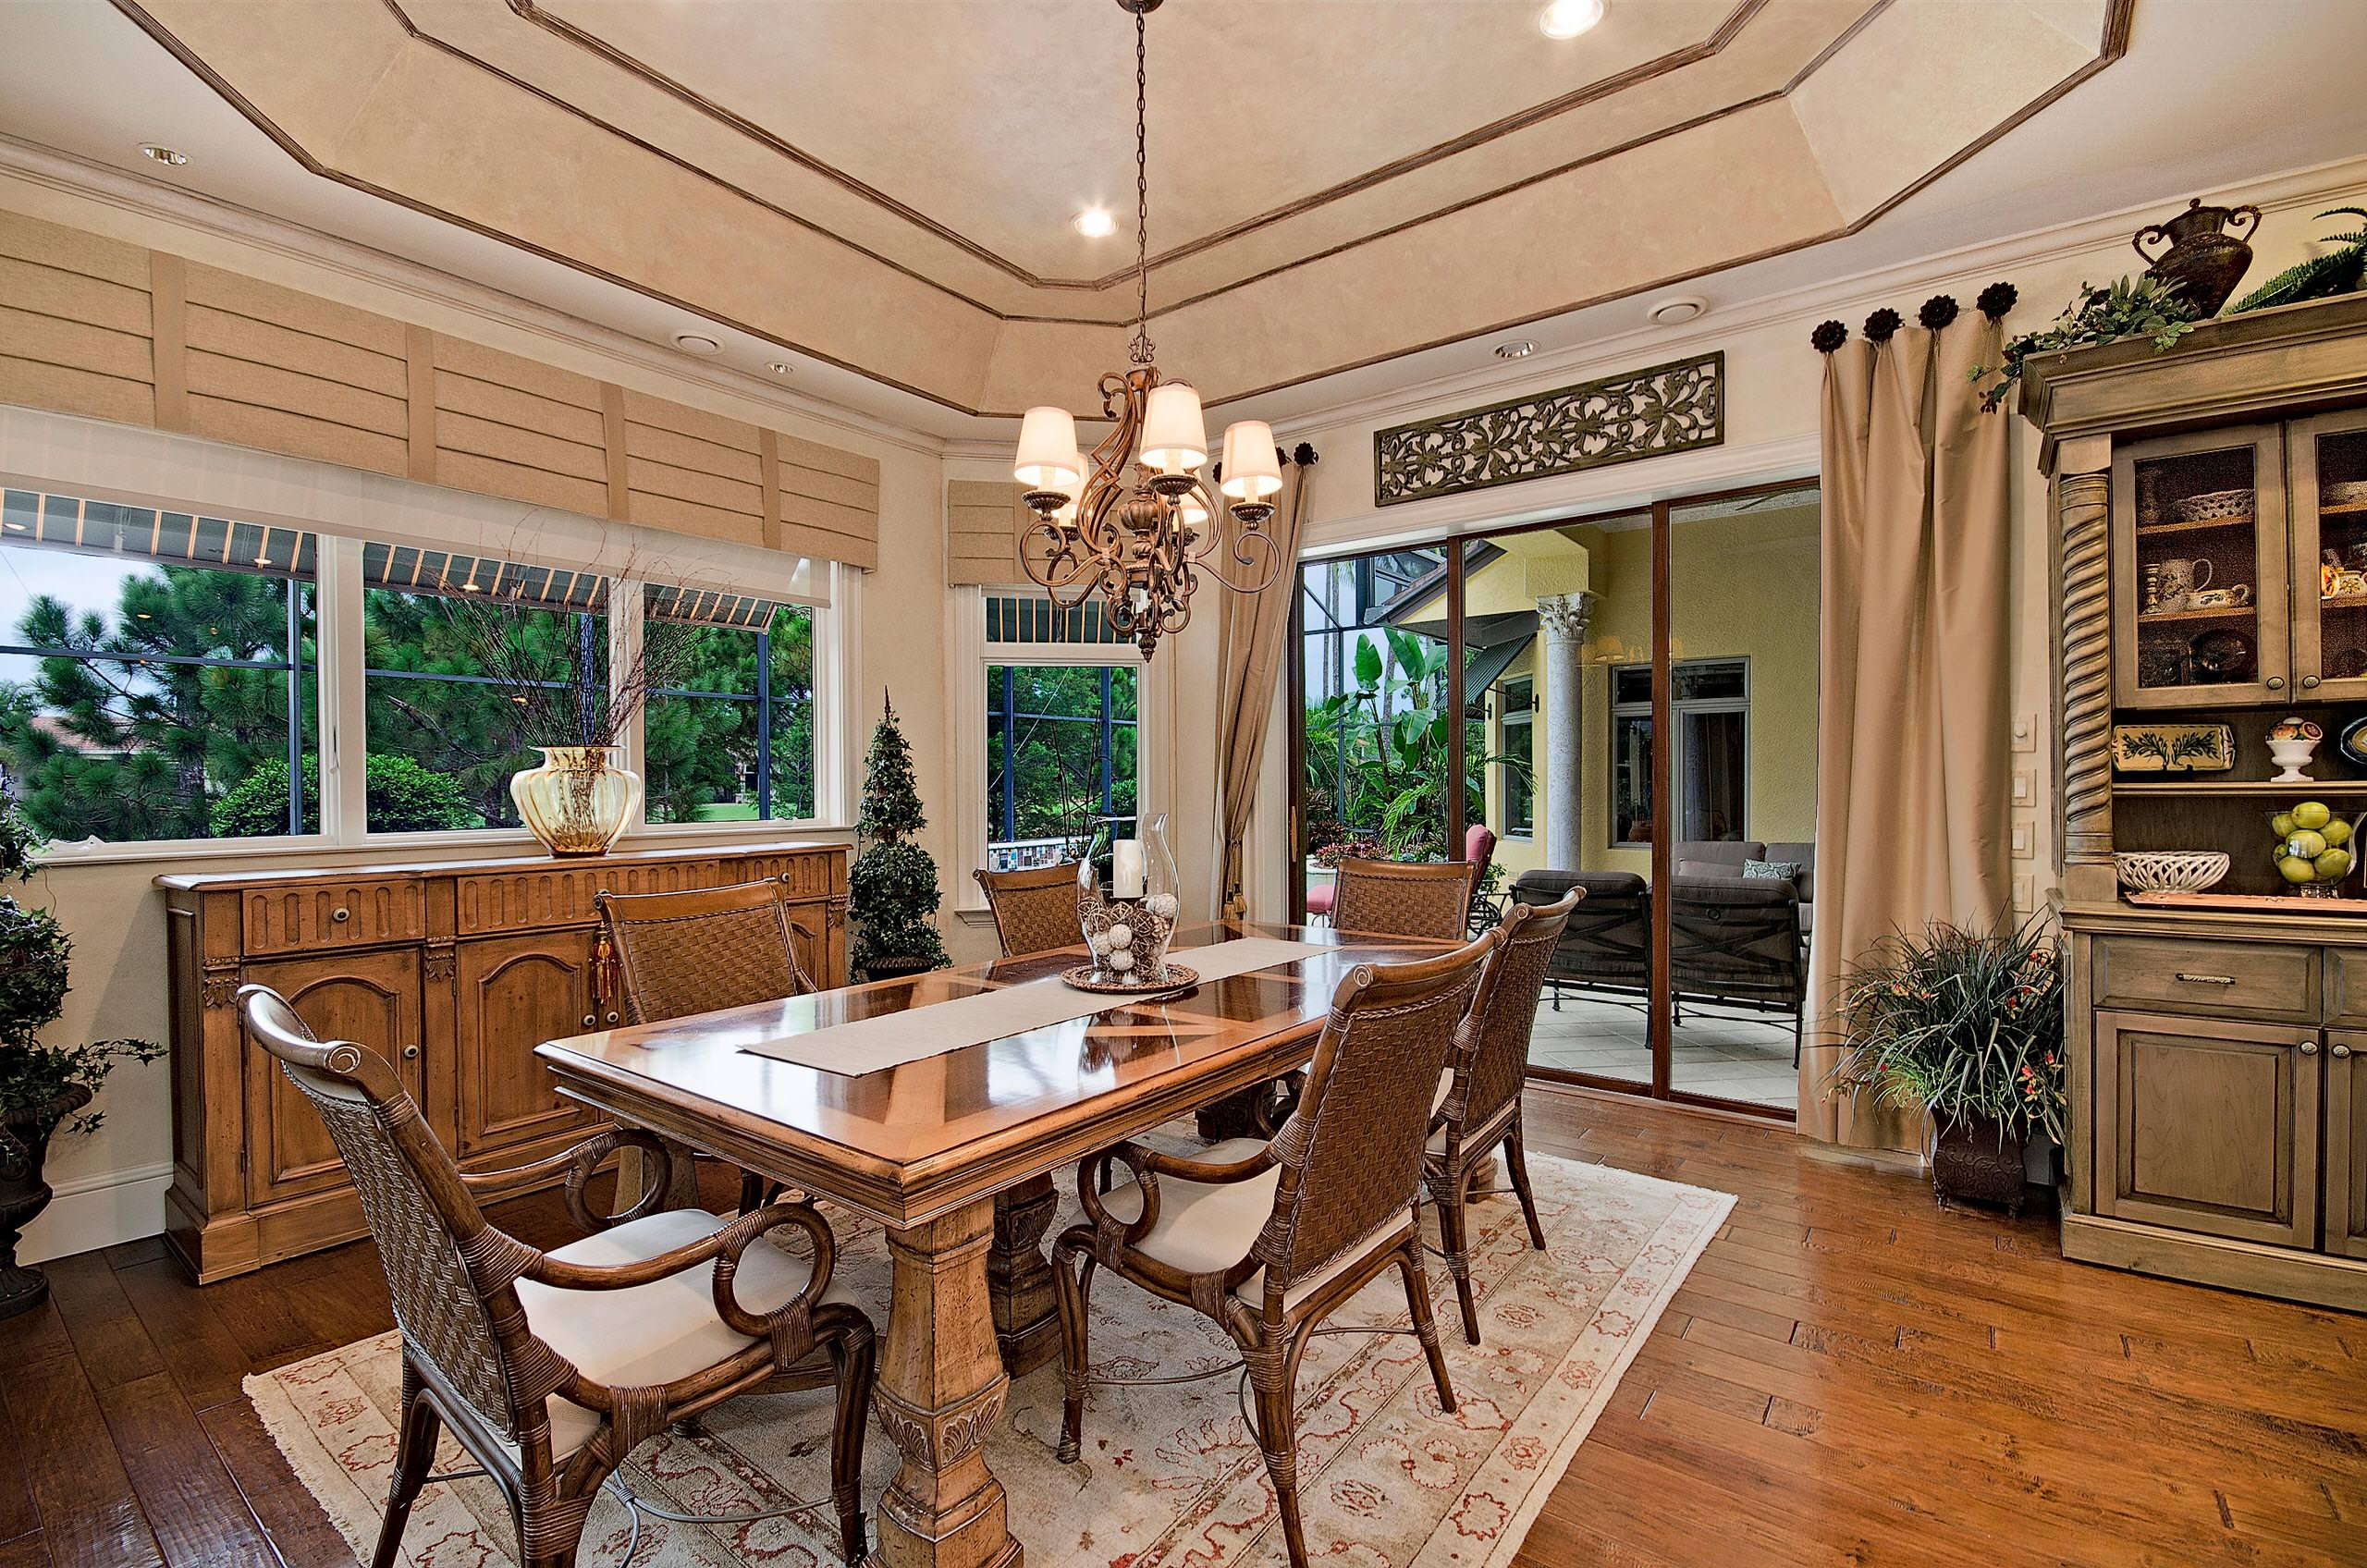 General contractor jacksonville fl Mediterranean Dining Room with area rug Art banquette brown chairs buffet centerpiece chandelier cornice curtains